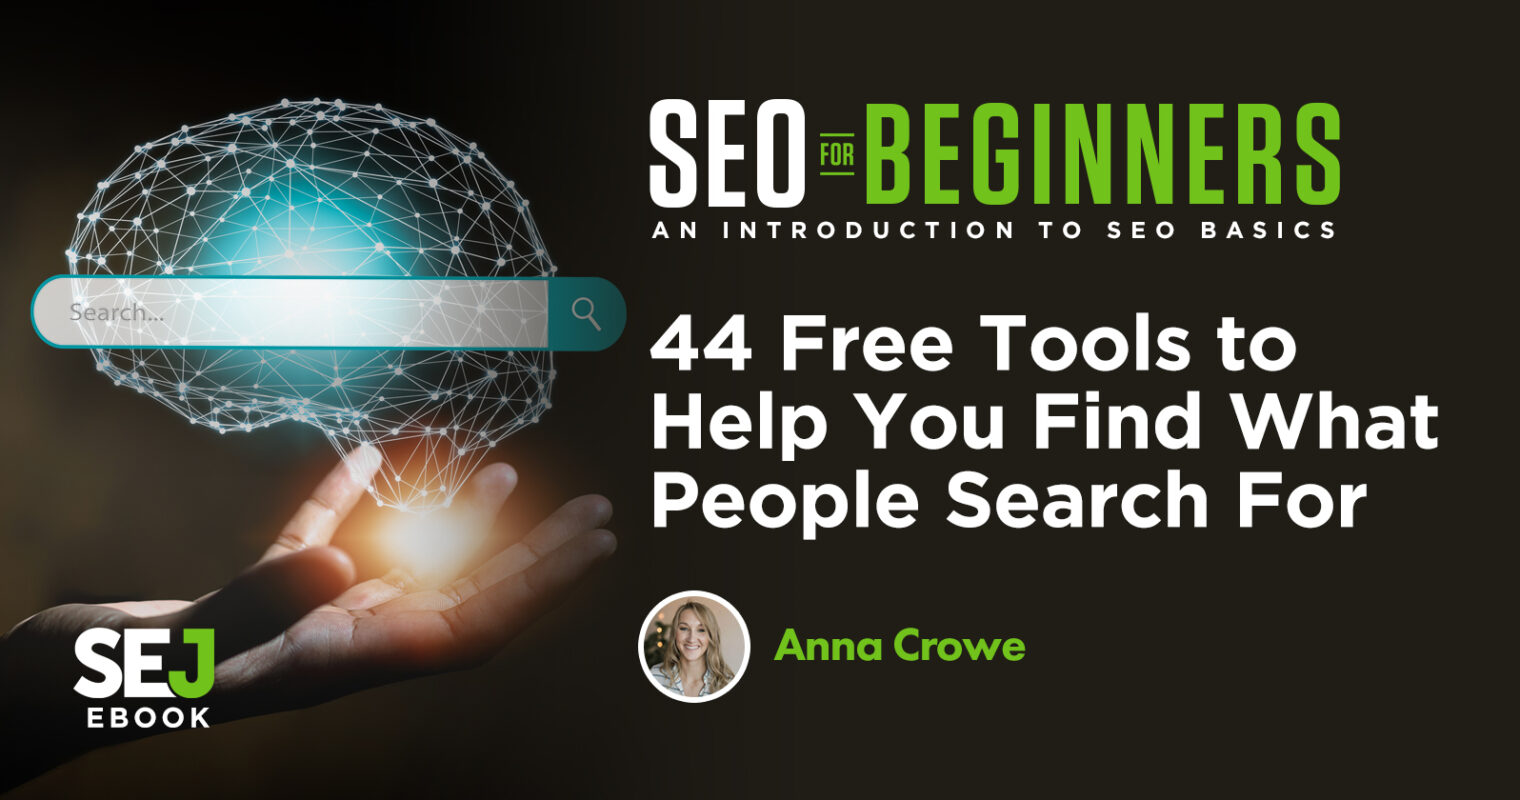 44 Free Tools to Help You Find What People Search For